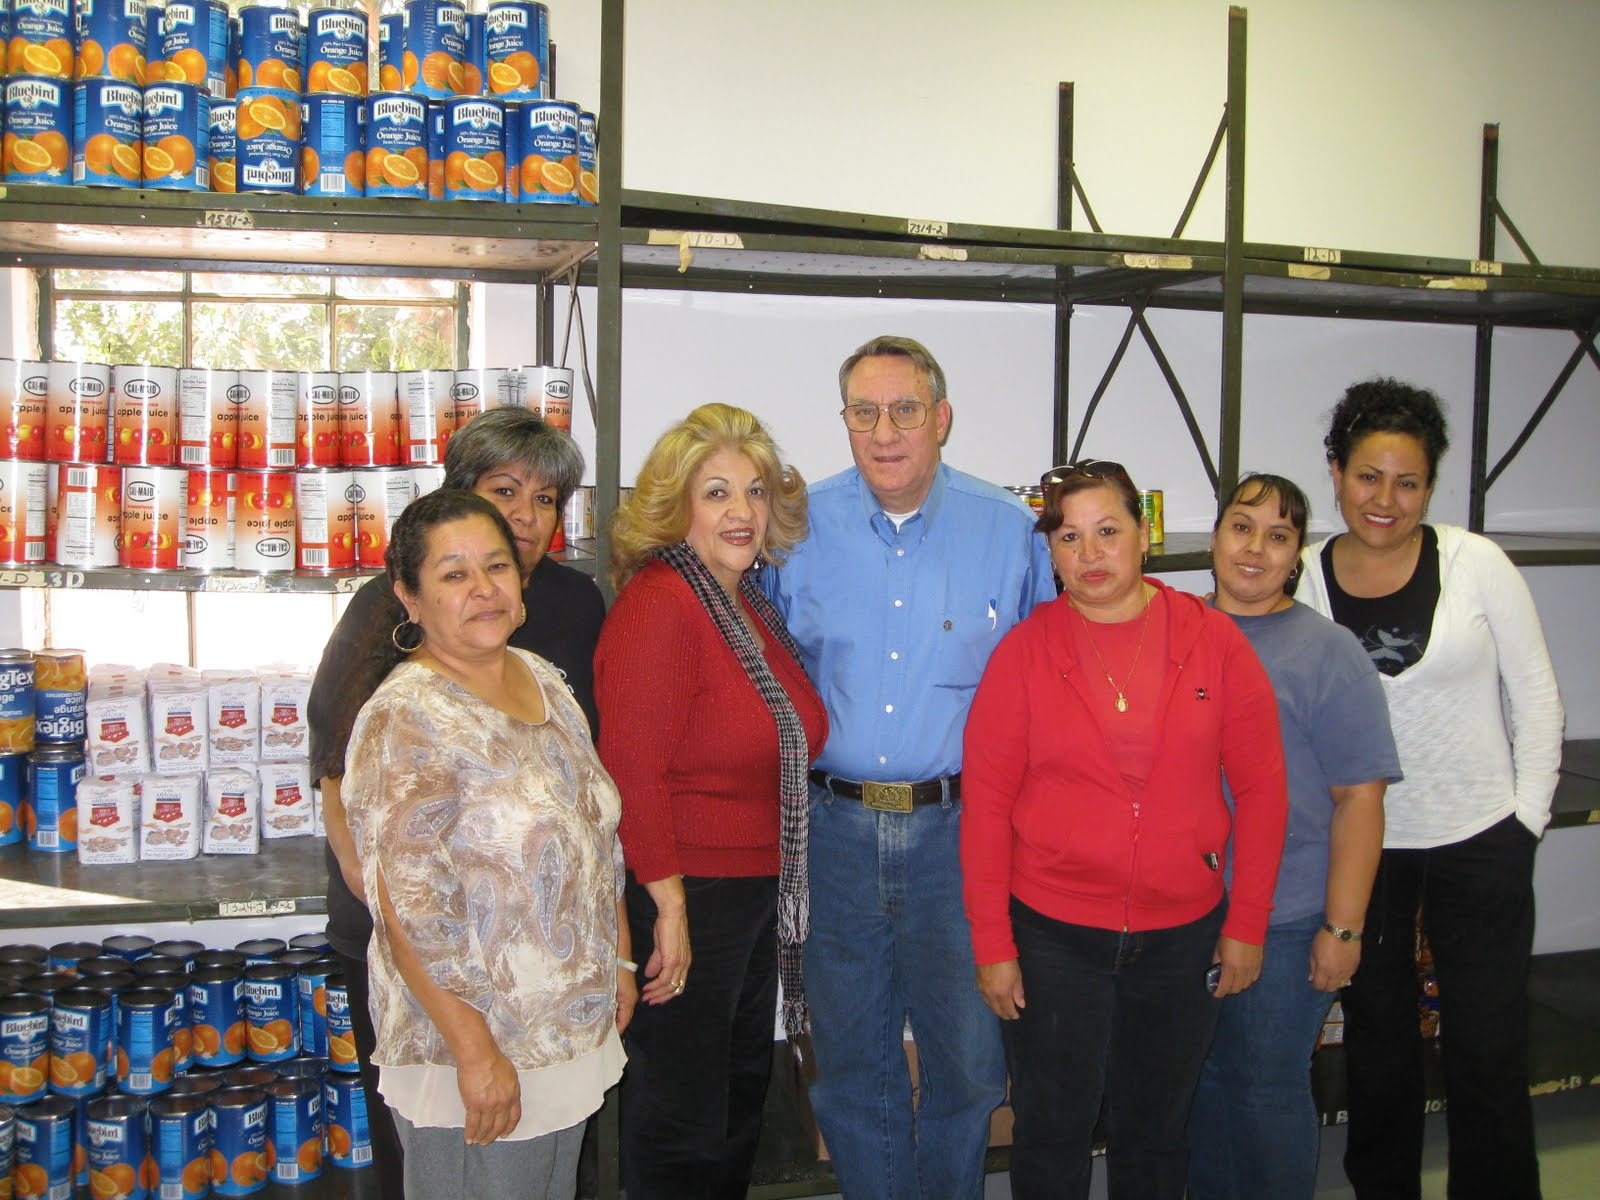 Eligibility For Food Pantry In Texas